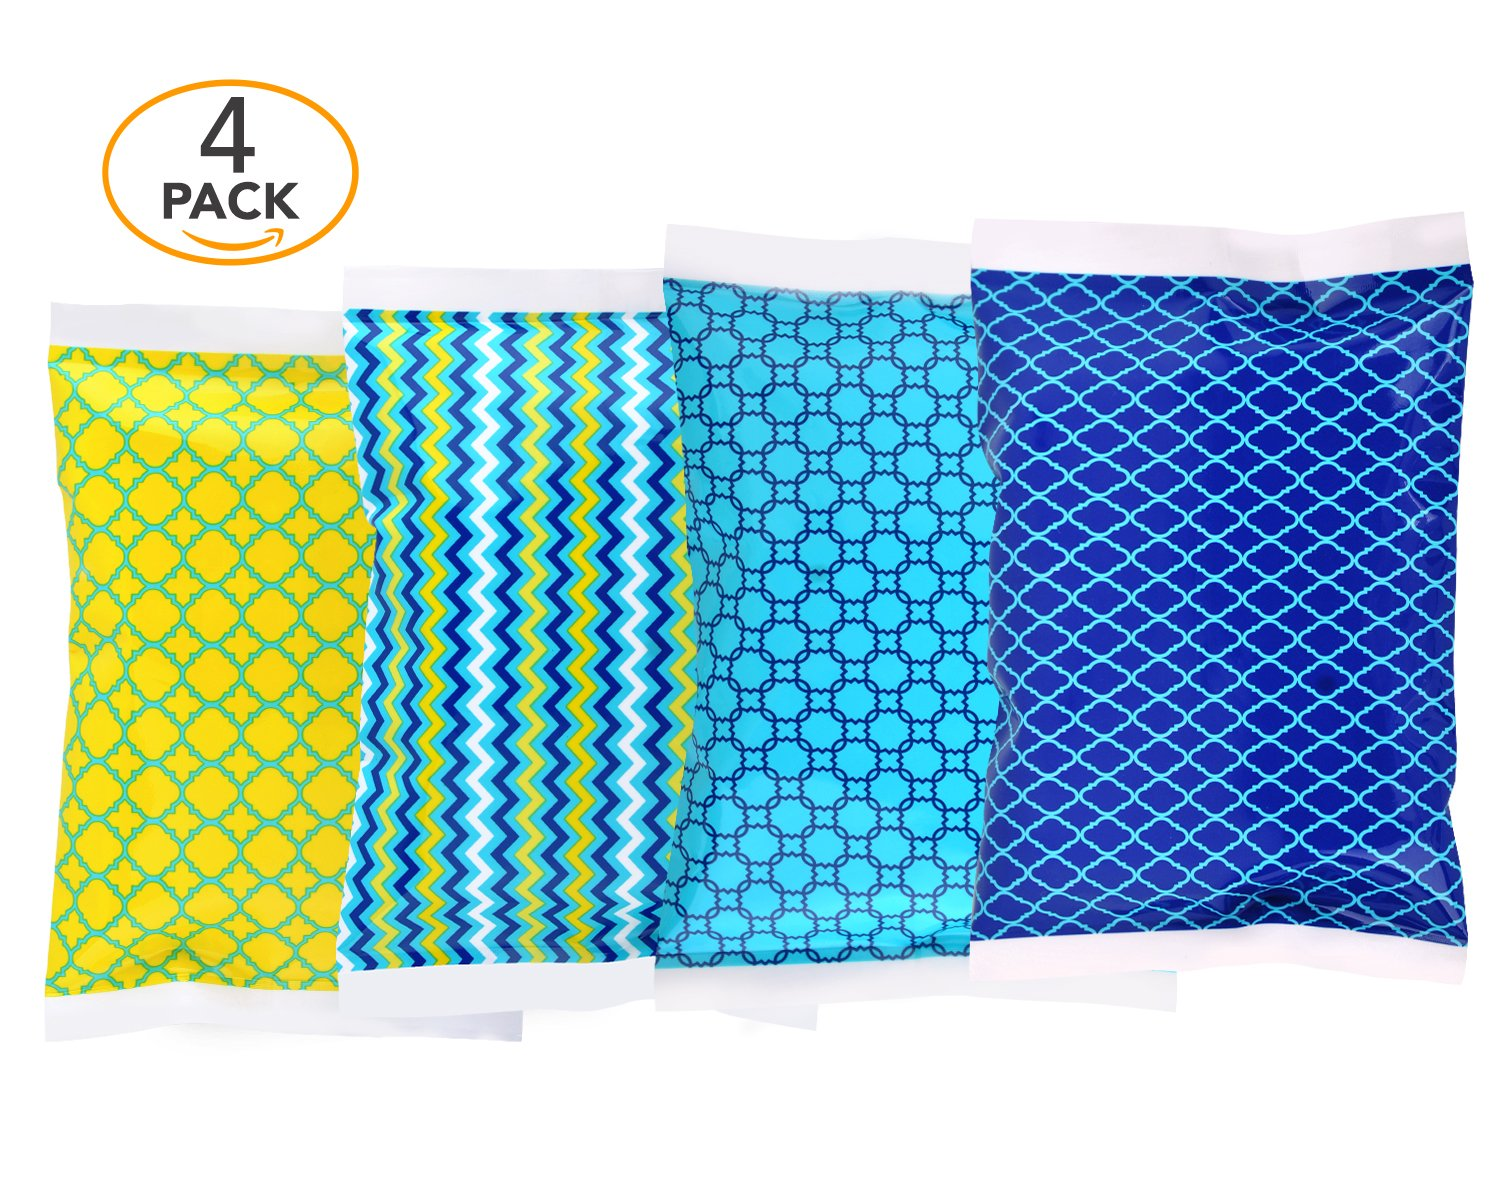 Ice Pack for Lunch Boxes - 4 Reusable Packs - Classic Prints - Keeps Food Cold – Cool Print Bag Designs - Great for Kids or Adults Lunchbox and Cooler